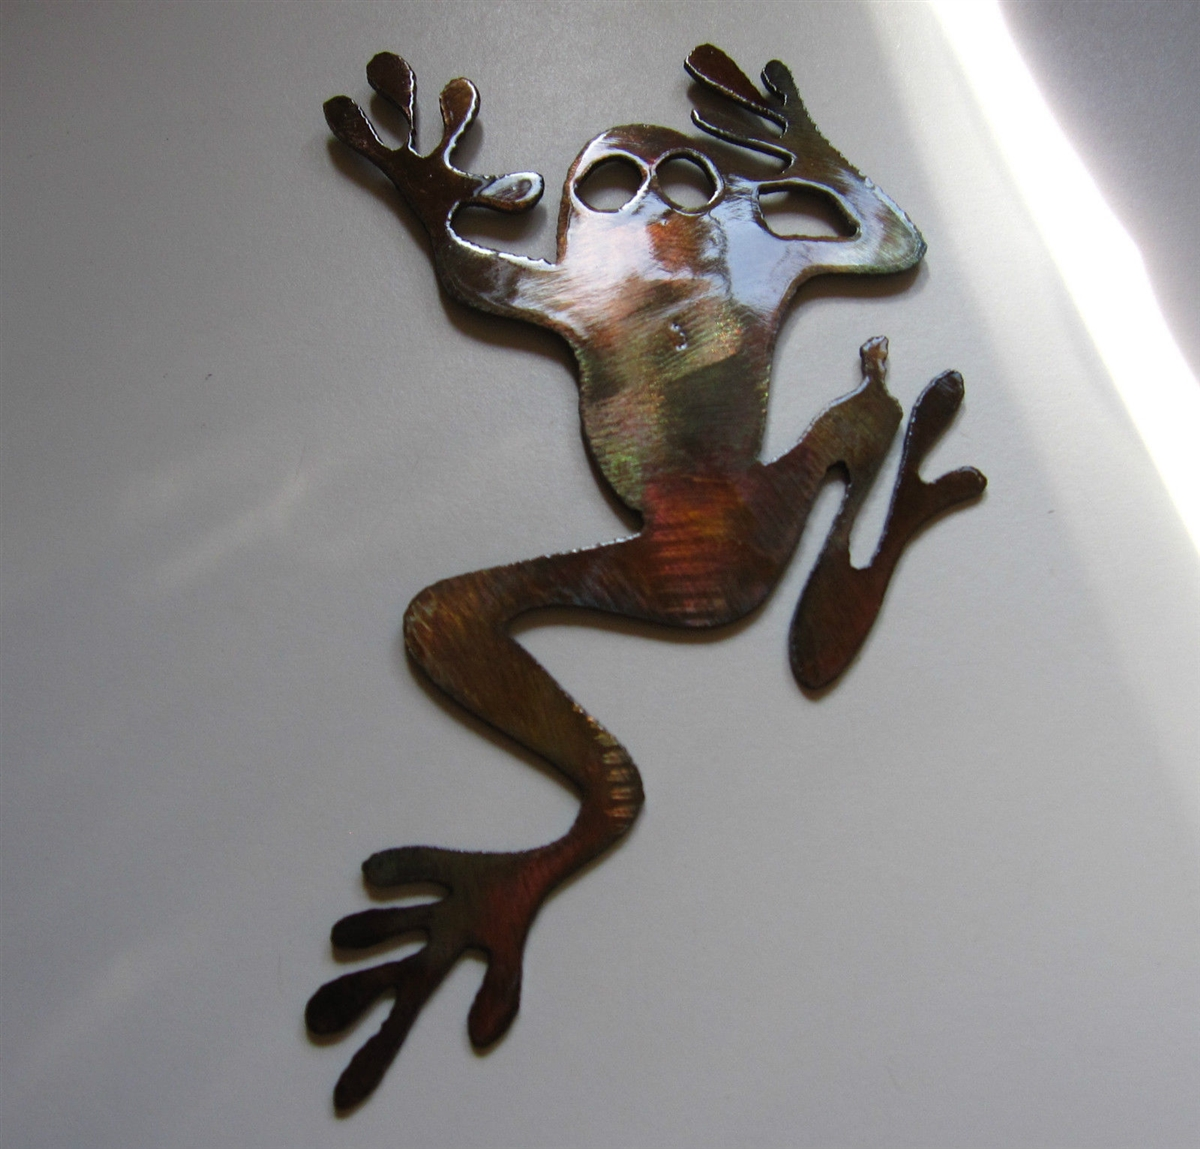 Rainforest Tree Frog Metal Wall Art & Tree Climbing Frog Metal Art